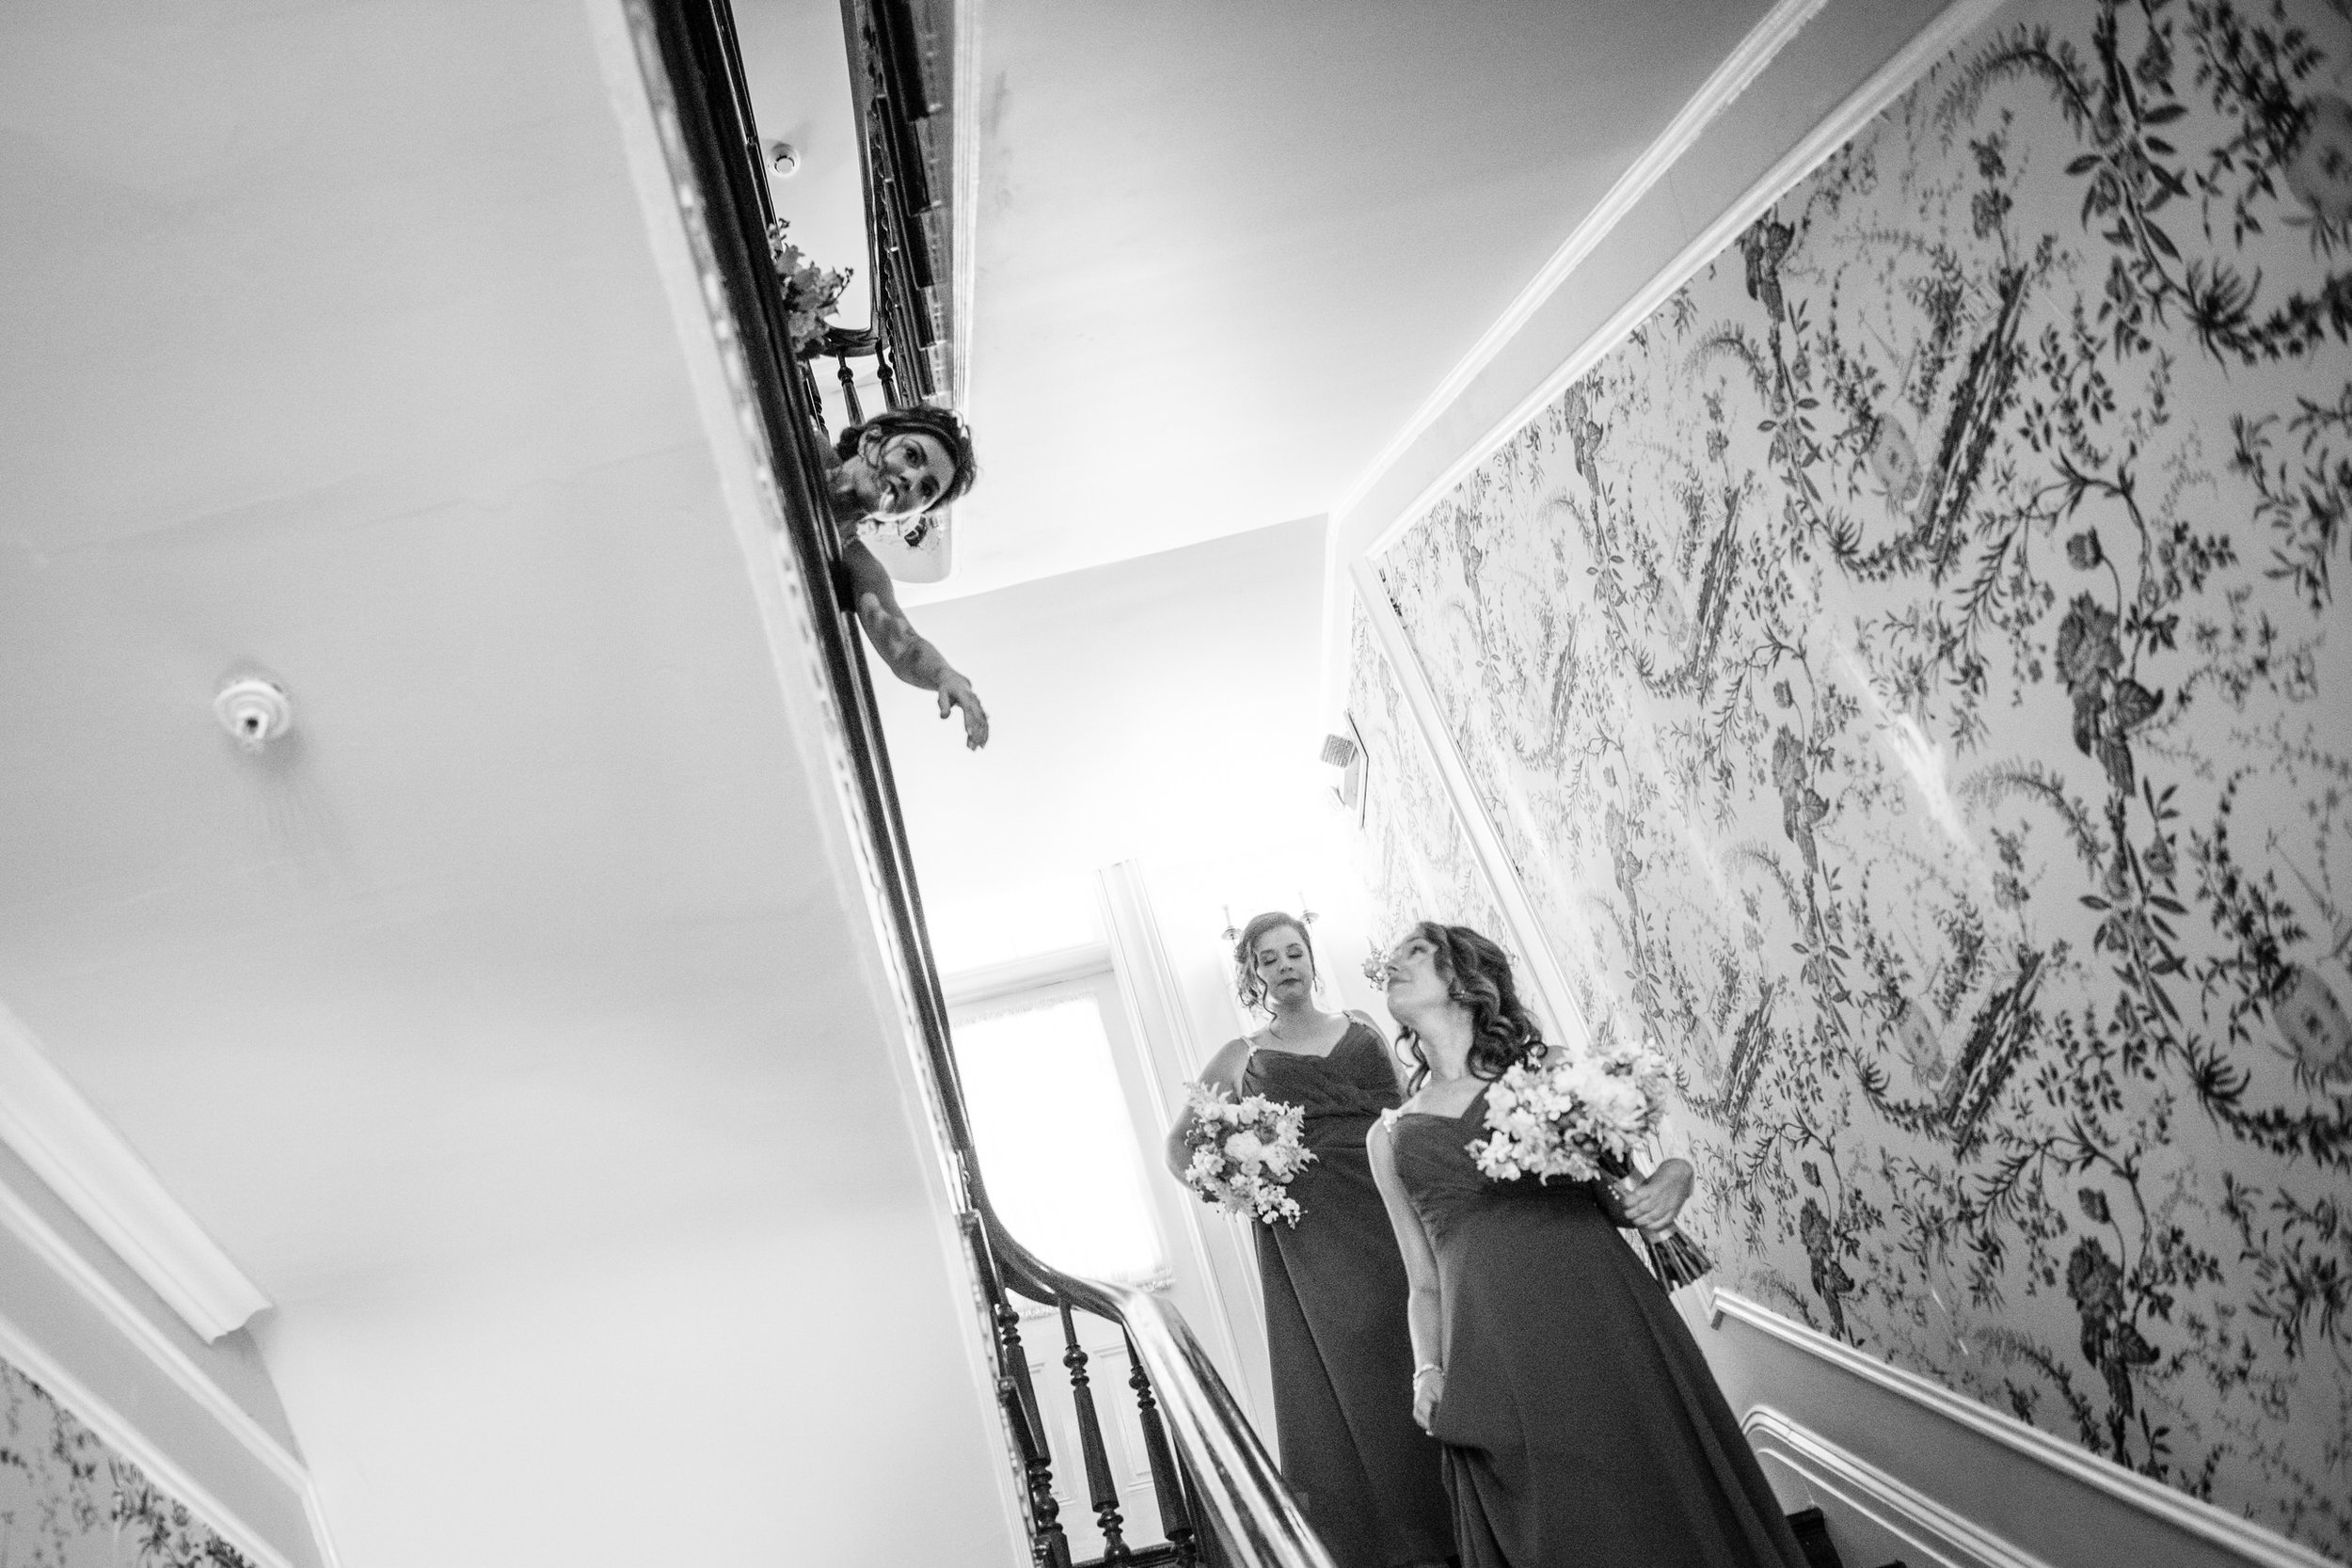 KentManorInnWedding-Marissa&Raed-GettingReady-1554.jpg